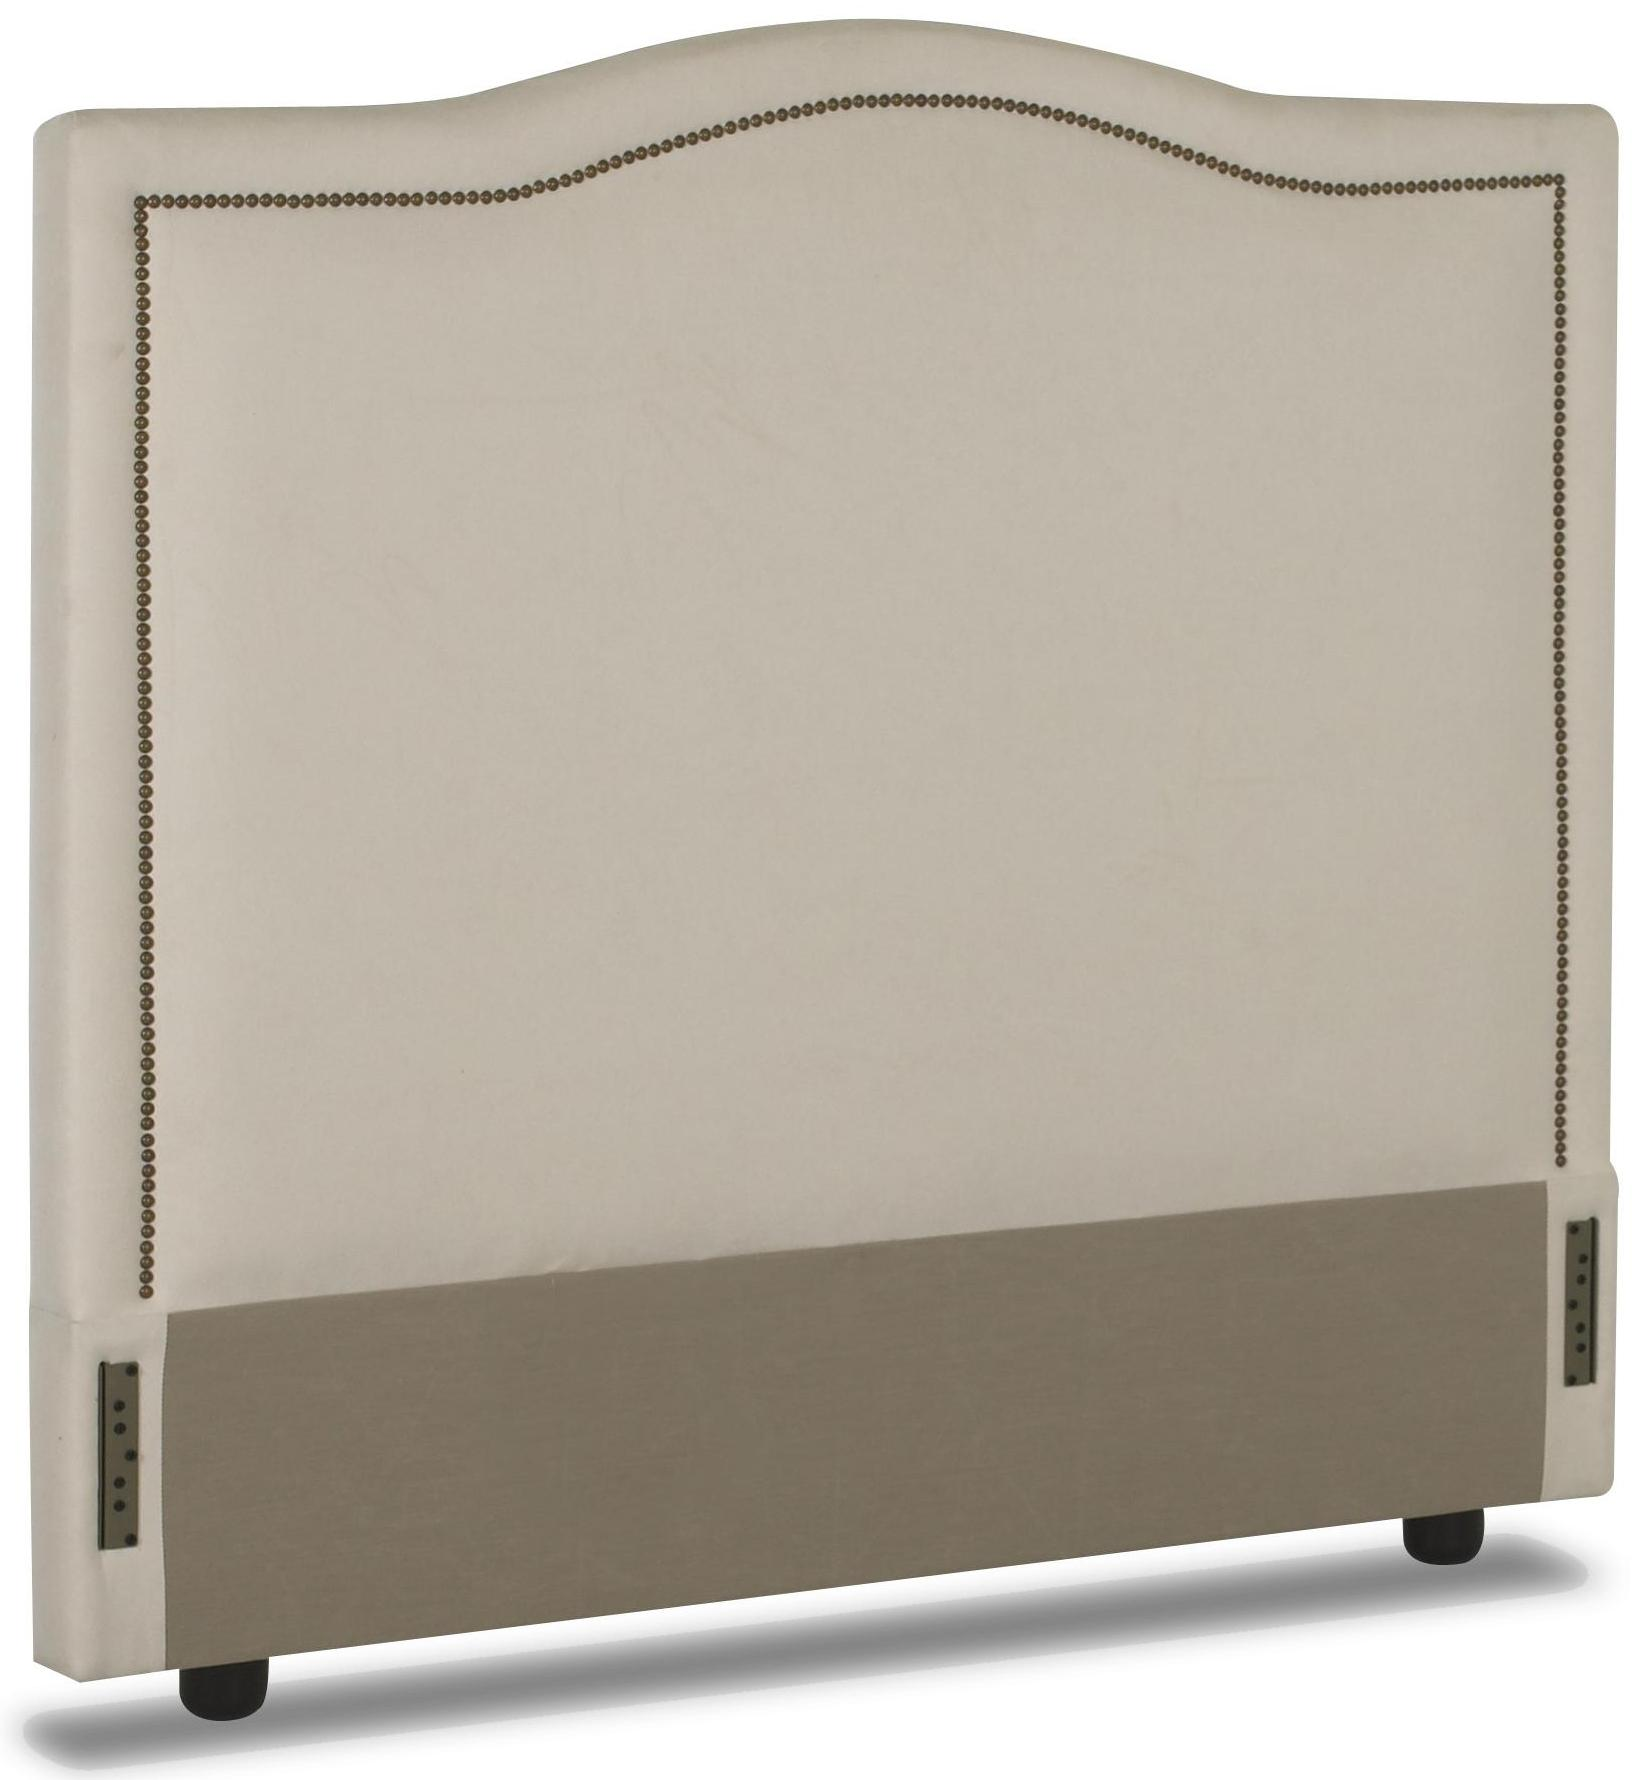 adjustable by christopher alford beige fabric home knight product garden headboard